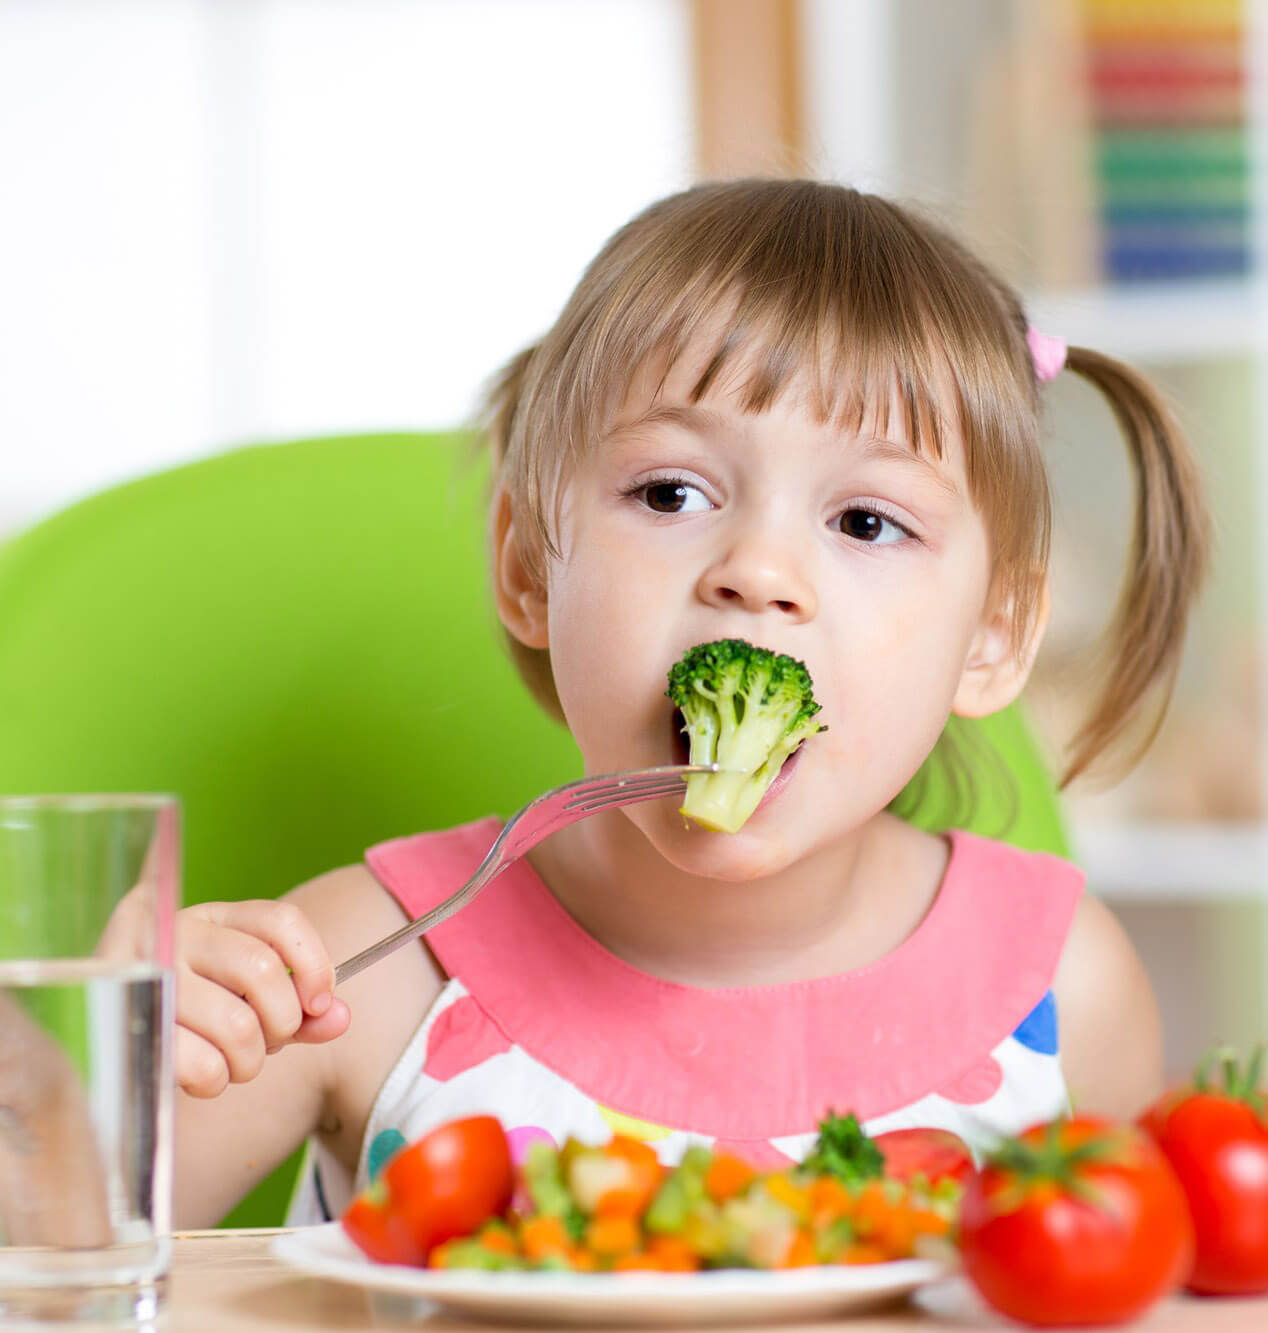 little girl eating broccoli